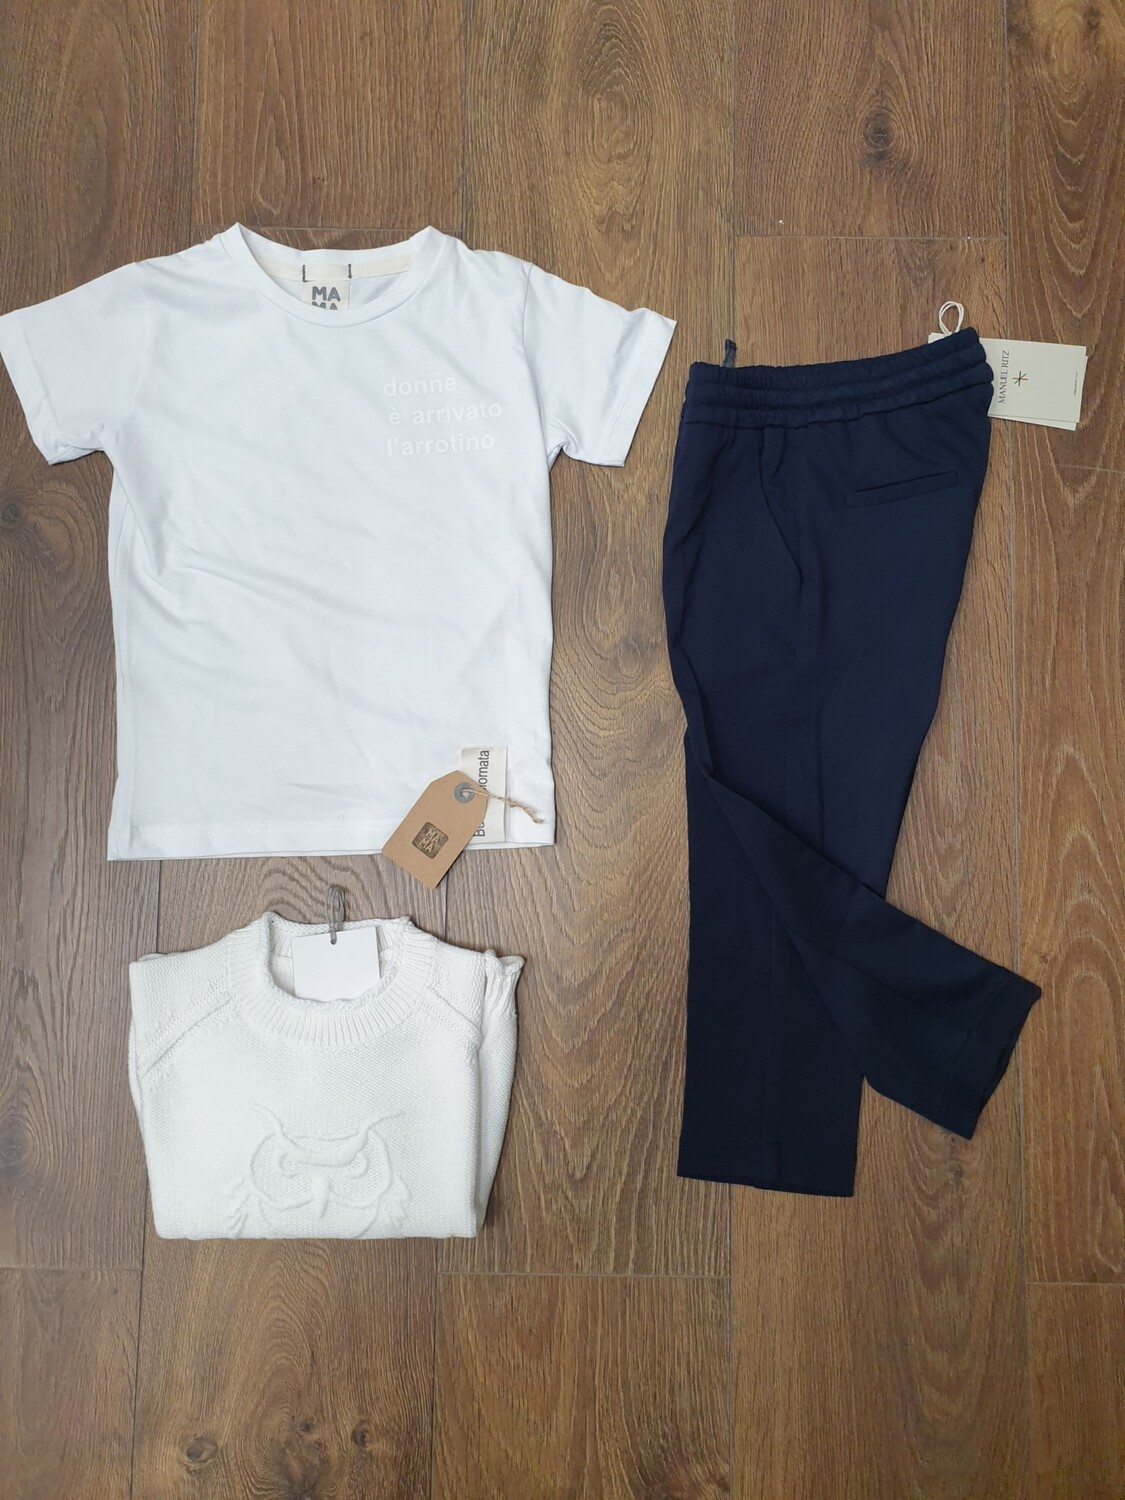 Completo outfit 3 pezzi